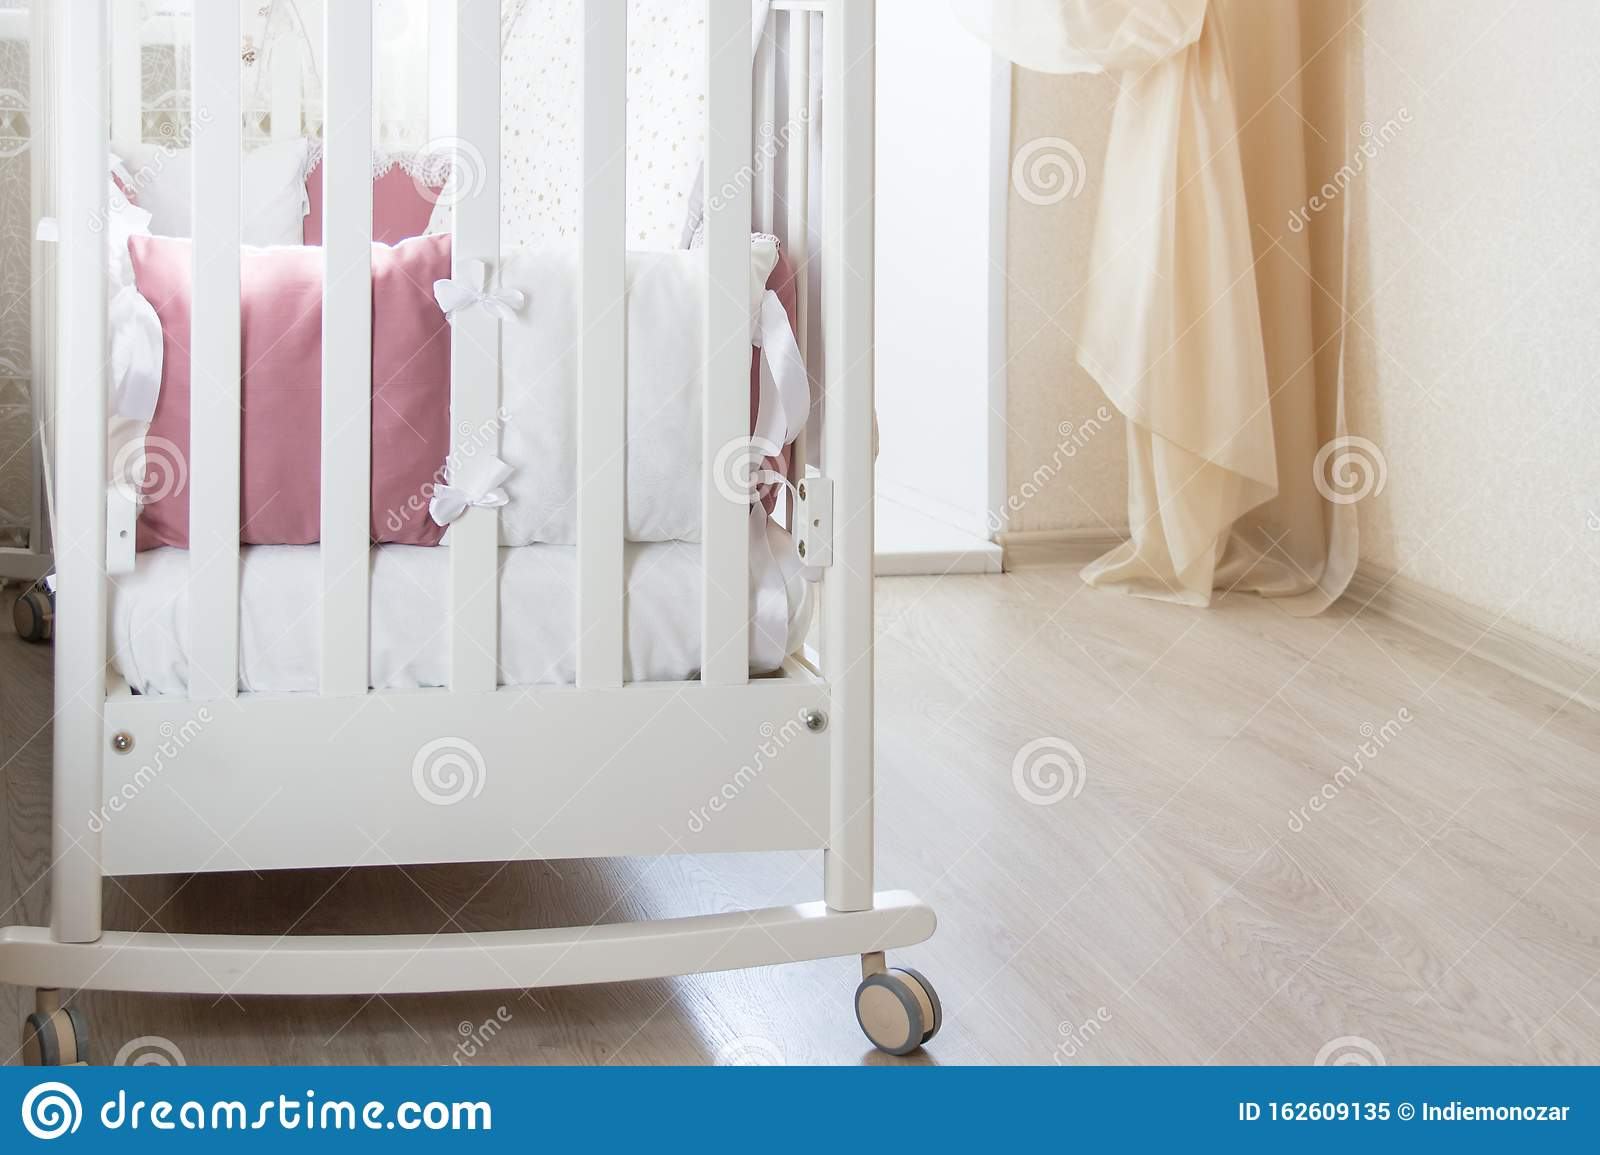 Baby Bed Crib With White And Burgundy Color Pillows With Laces Stock Image Image Of Design Light 162609135